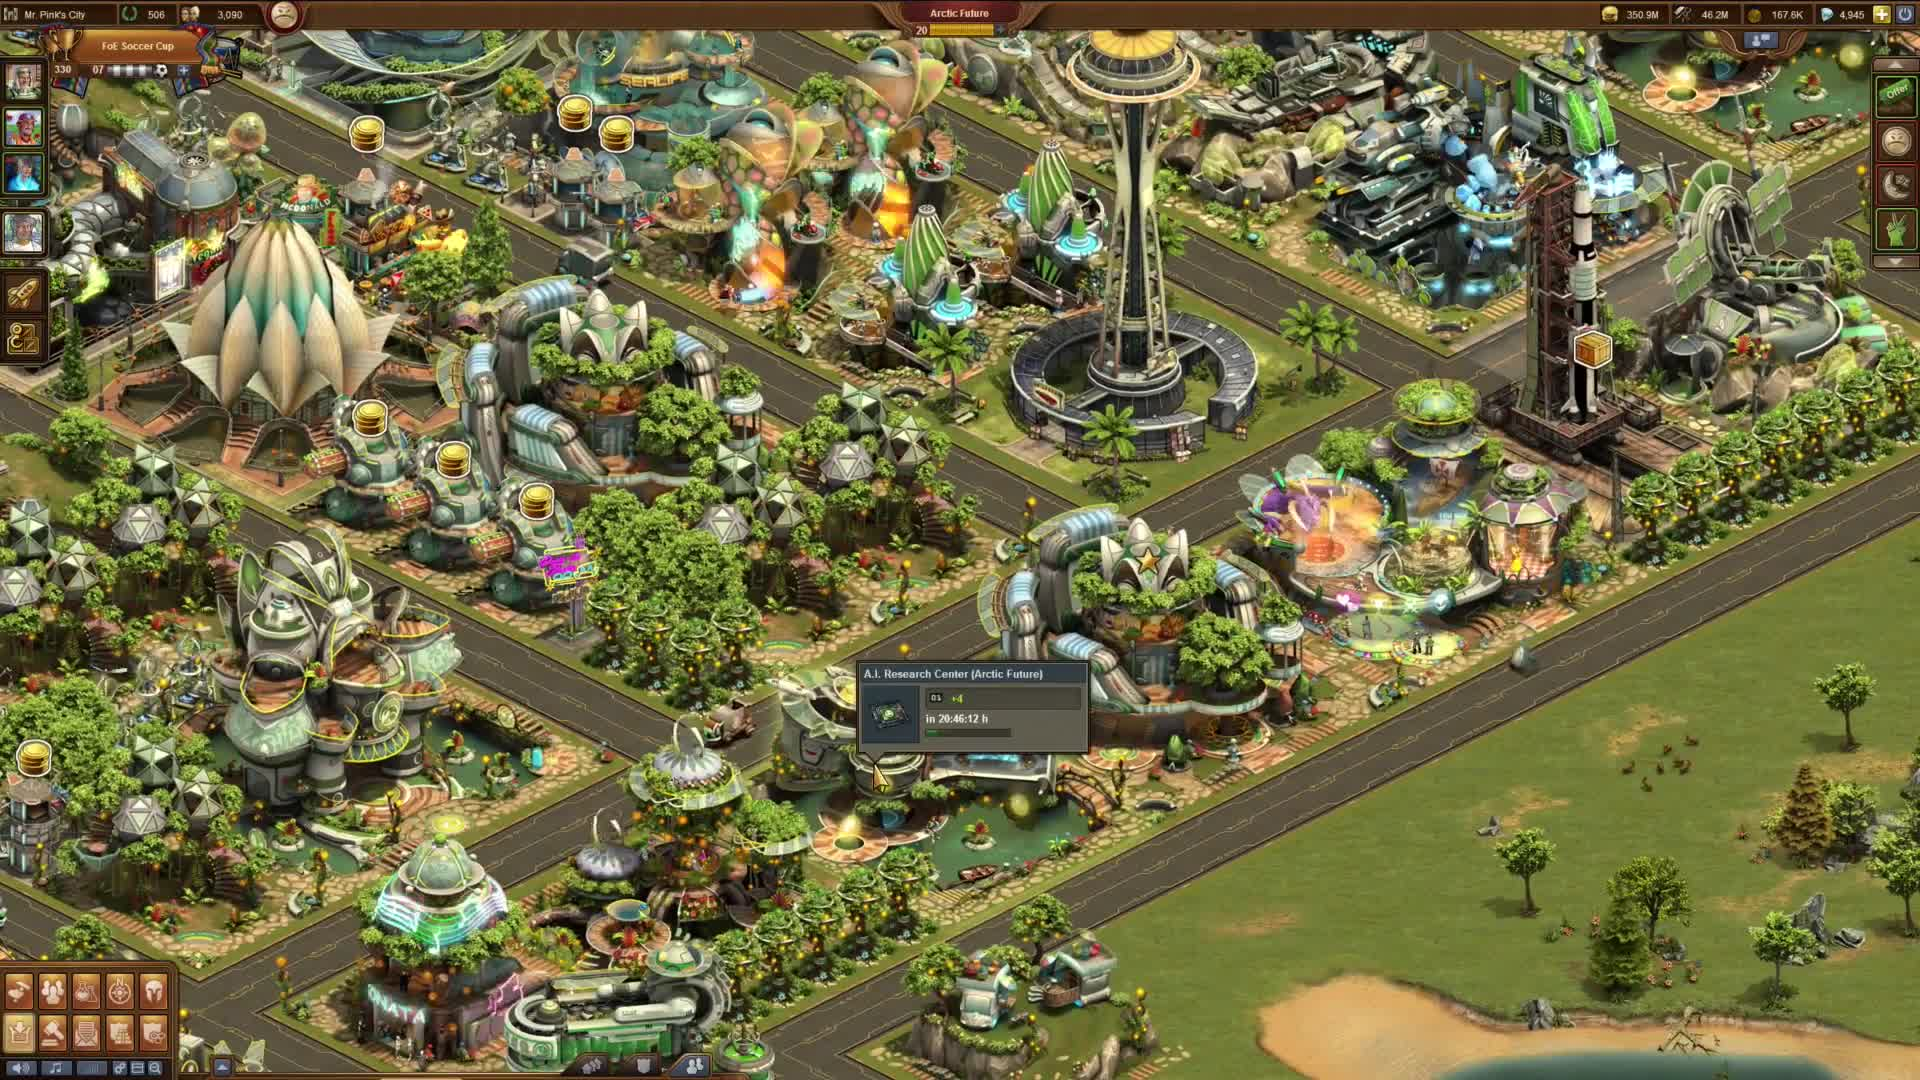 Introducing The Arctic Future in Forge of Empires